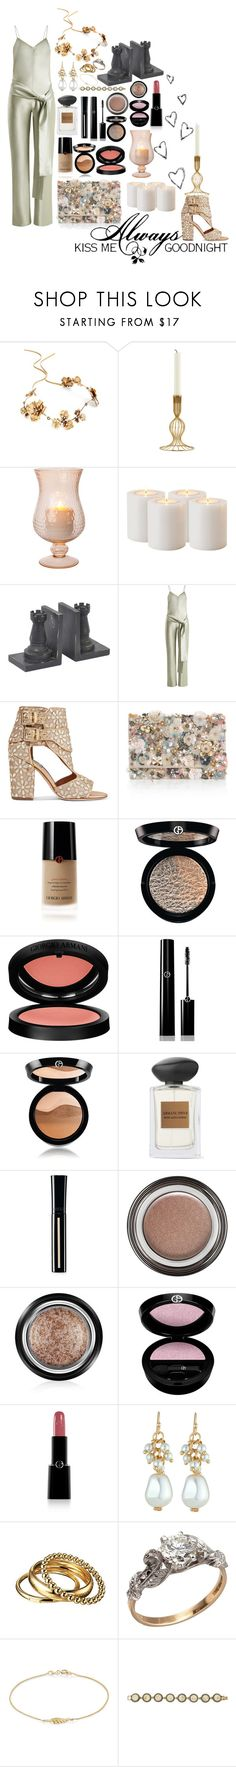 """A nigth at the Castle"" by carlagoiata ❤ liked on Polyvore featuring Brinley Co, Twigs & Honey, House Doctor, Eichholtz, Galvan, Laurence Dacade, Accessorize, Giorgio Armani, Love Quotes Scarves and Emily & Ashley"